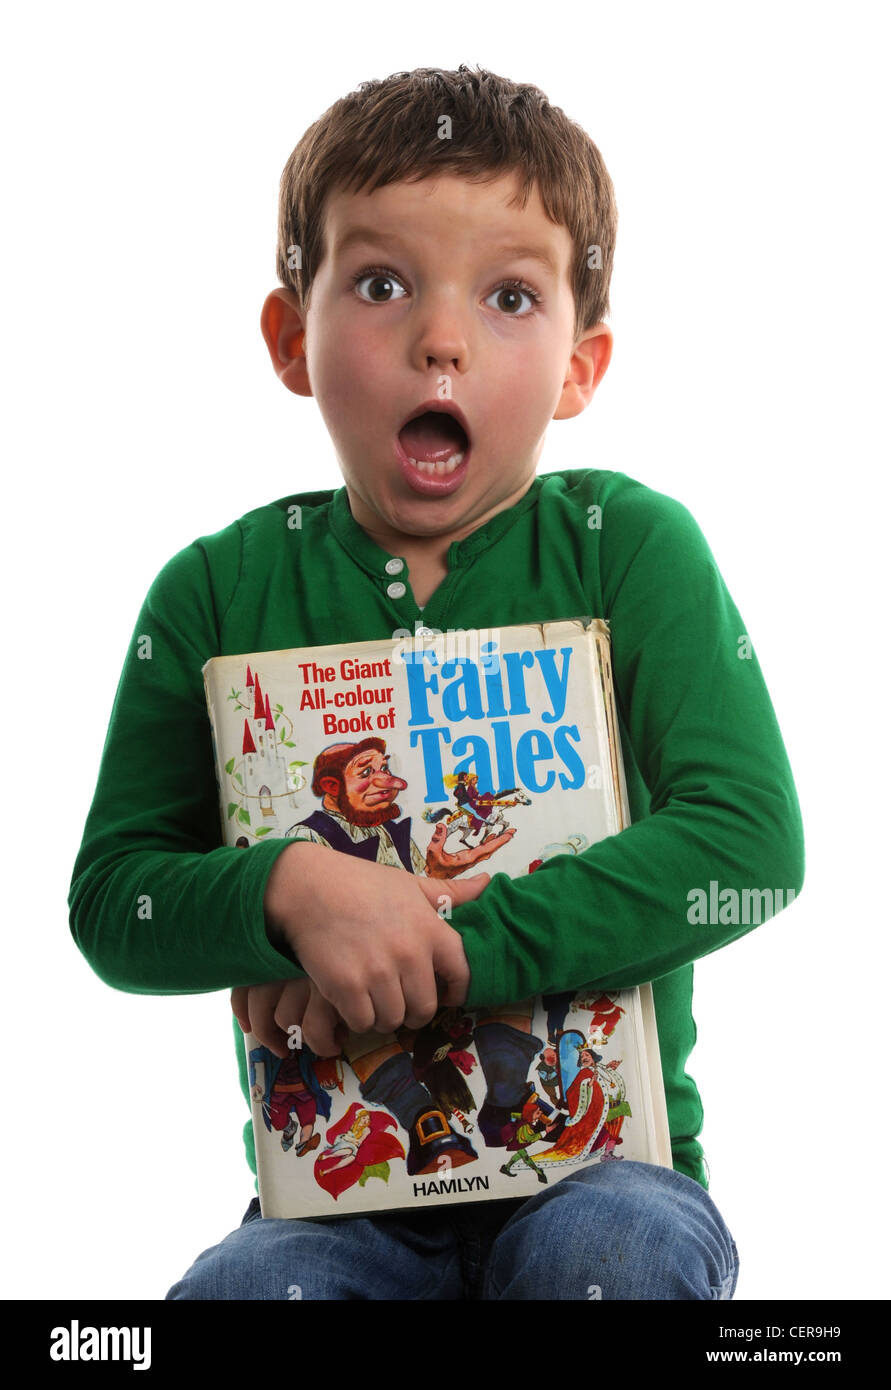 Boy with a book of Fairy Tales - Stock Image